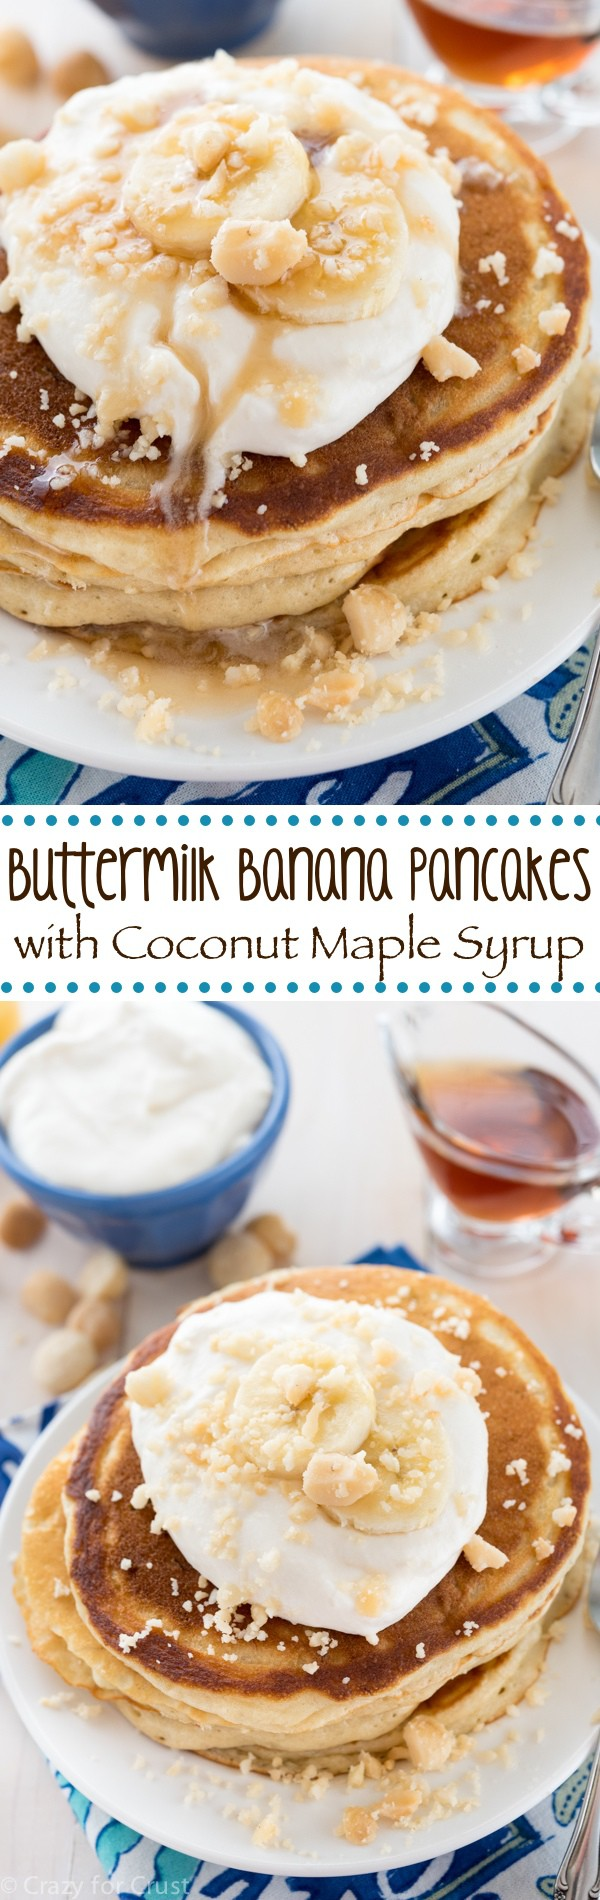 Buttermilk Banana Pancakes with Coconut Maple Syrup ...